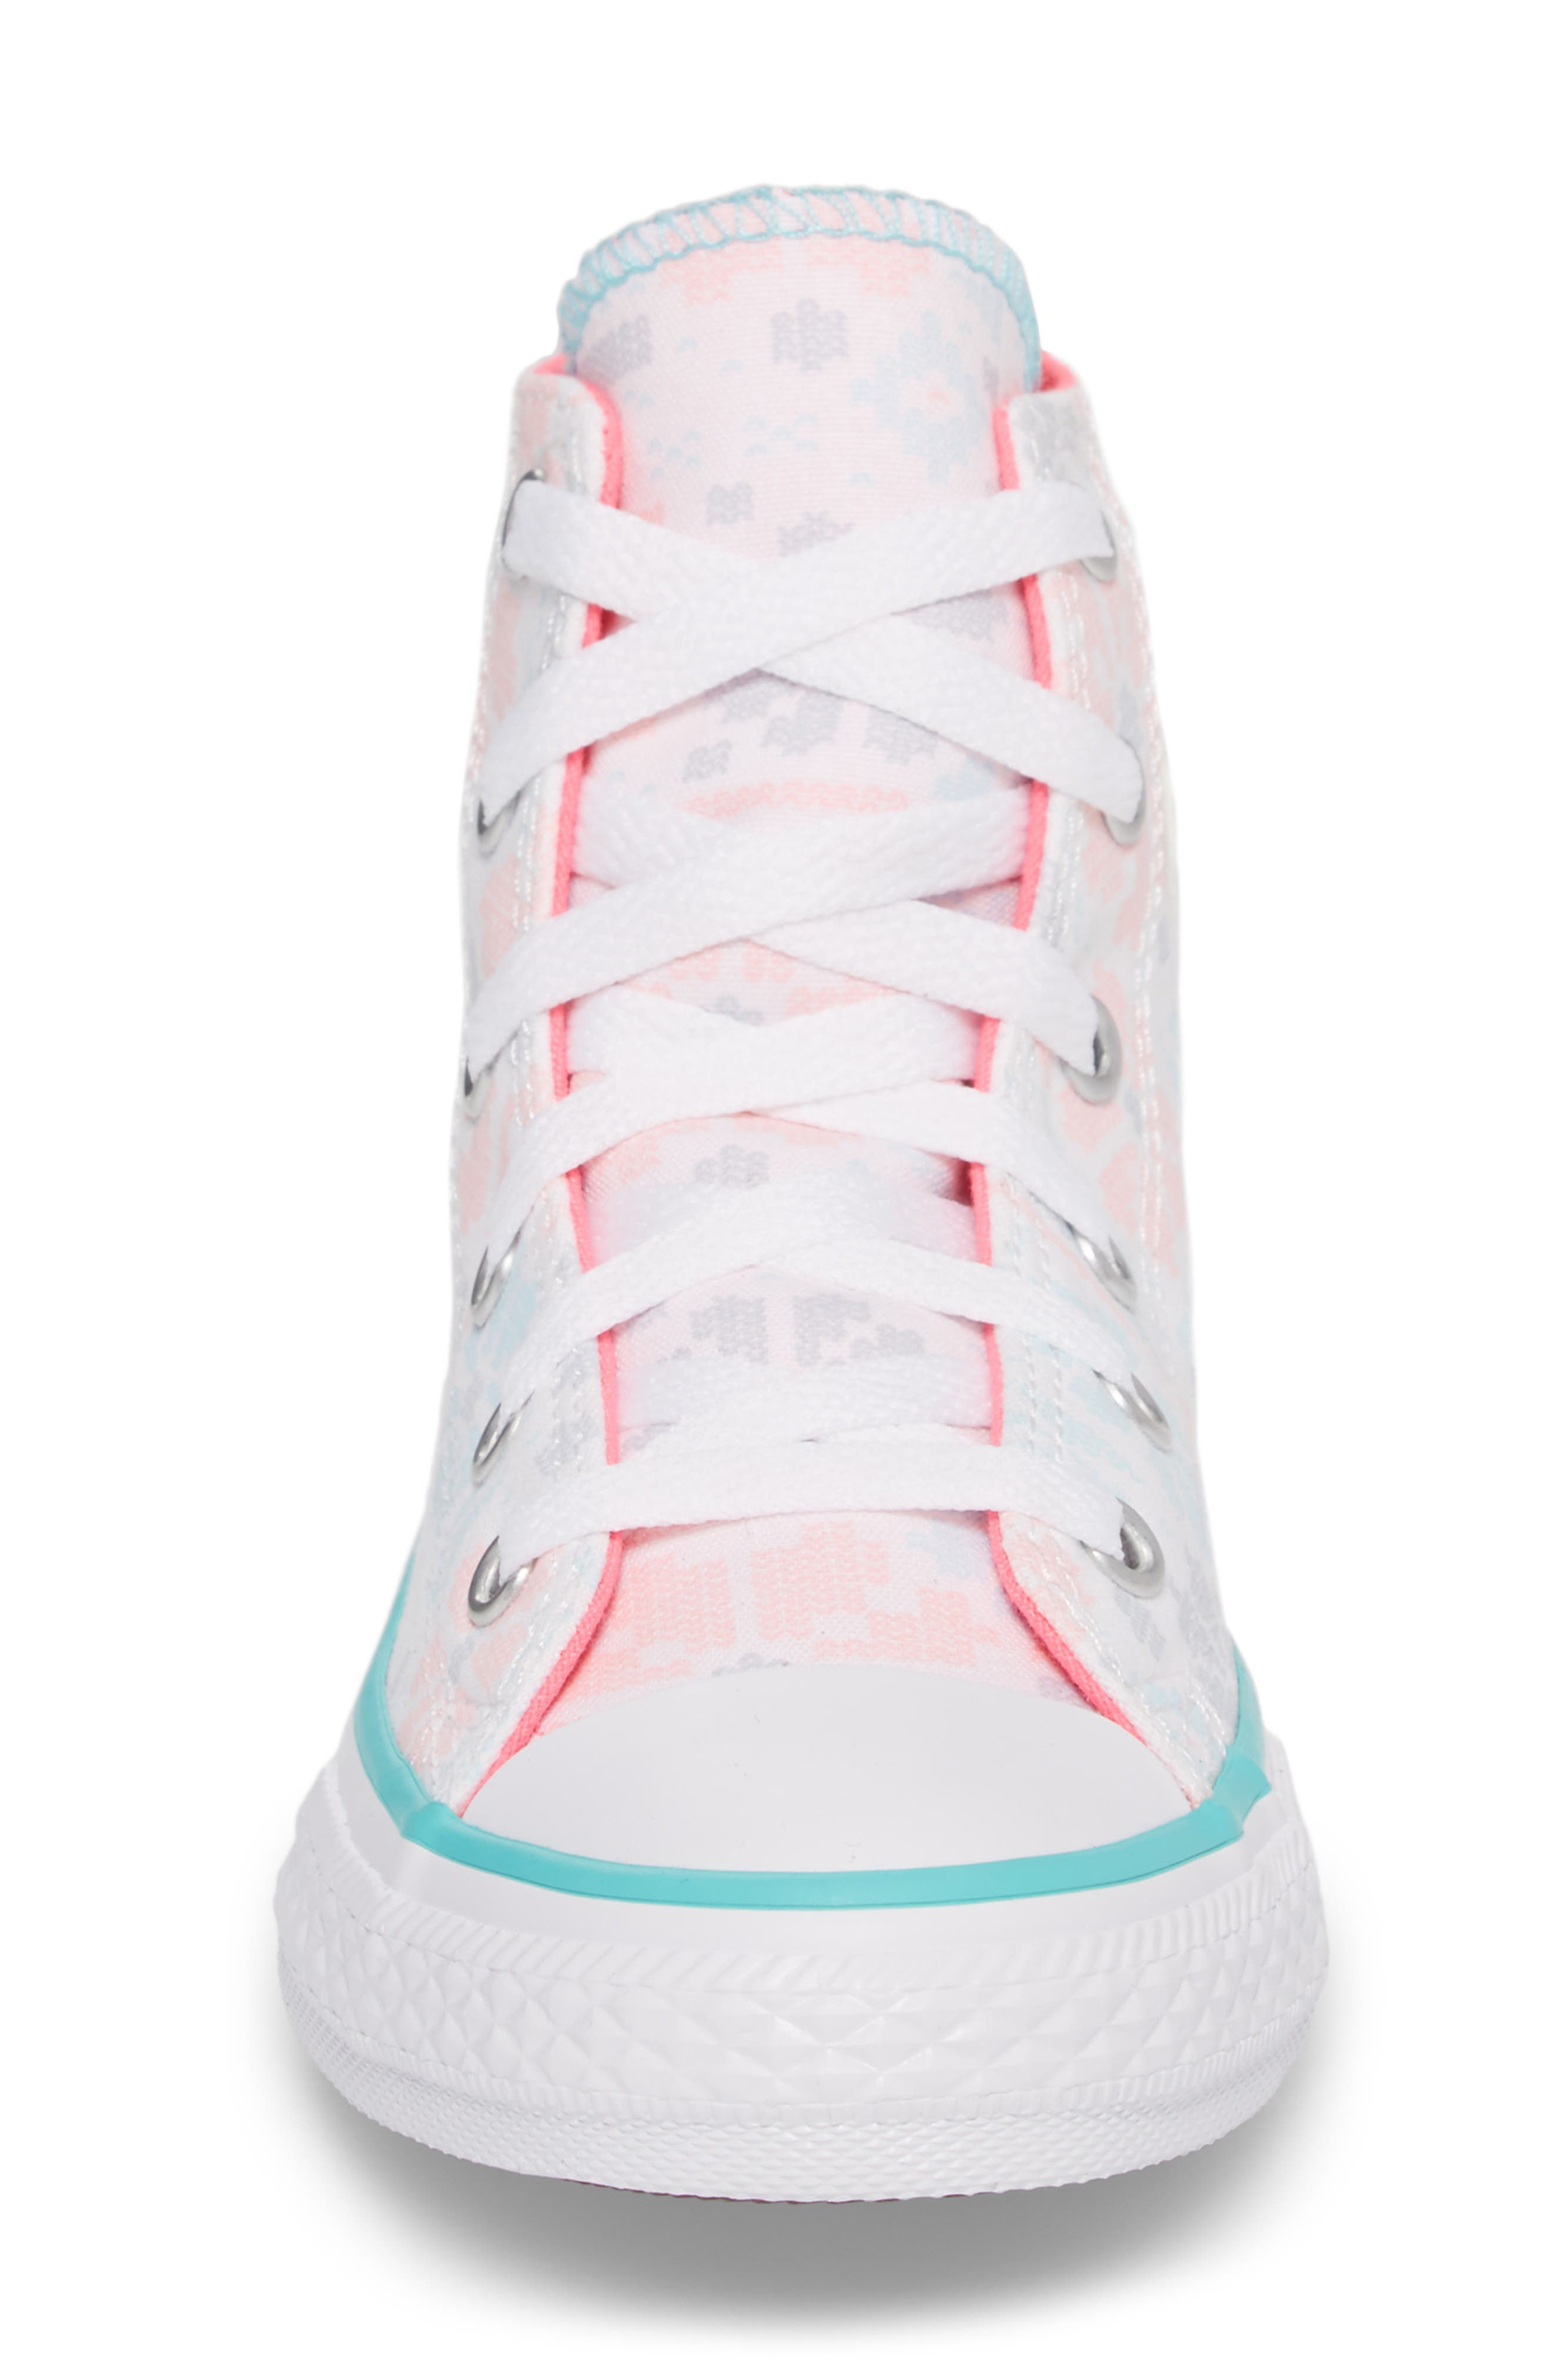 Chuck Taylor<sup>®</sup> All Star<sup>®</sup> High Top Sneaker,                             Alternate thumbnail 4, color,                             White/ Pink Canvas